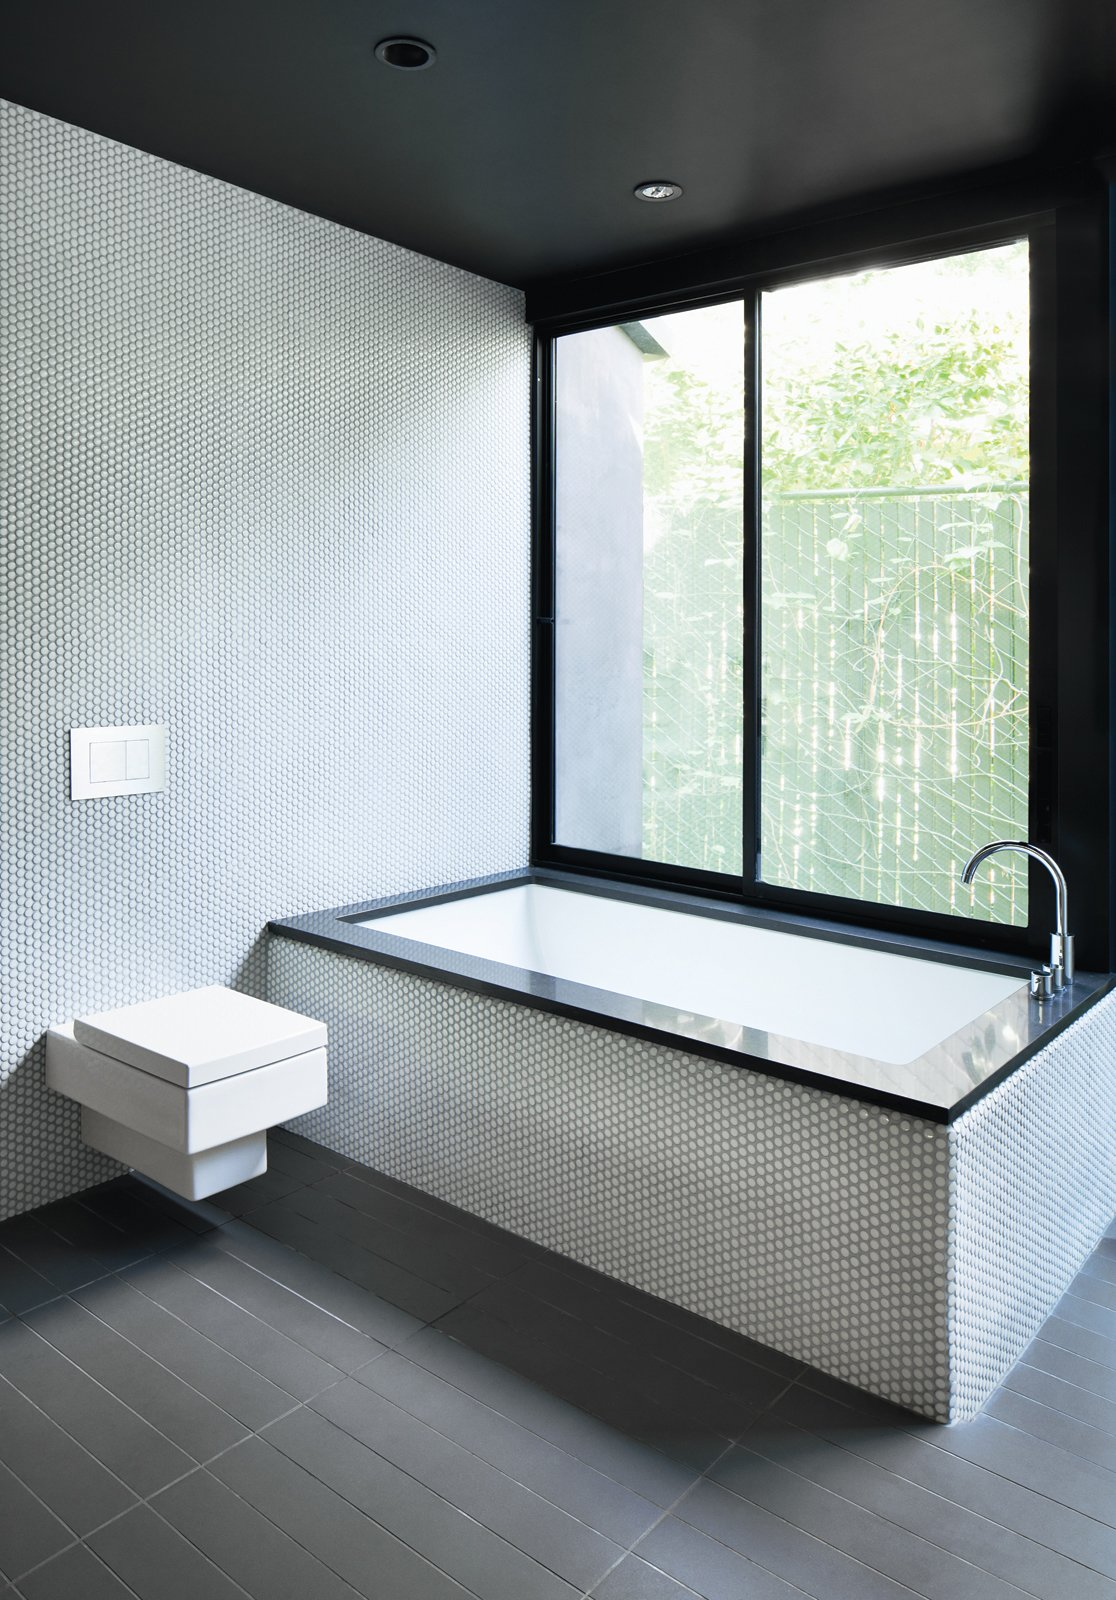 "For the bathroom inside a renovated Hollywood bungalow, architect Noah Walker used a simple palette of gray and white tile, black countertops, and stainless steel fixtures. ""I love minimal bathrooms with natural light, so less is more, and pay attention to the details,"" he advises. Tagged: Bath Room, Ceramic Tile Floor, One Piece Toilet, Recessed Lighting, Ceramic Tile Wall, and Undermount Tub.  Baths by Lara Deam from A Minimalist Bathroom in Los Angeles"